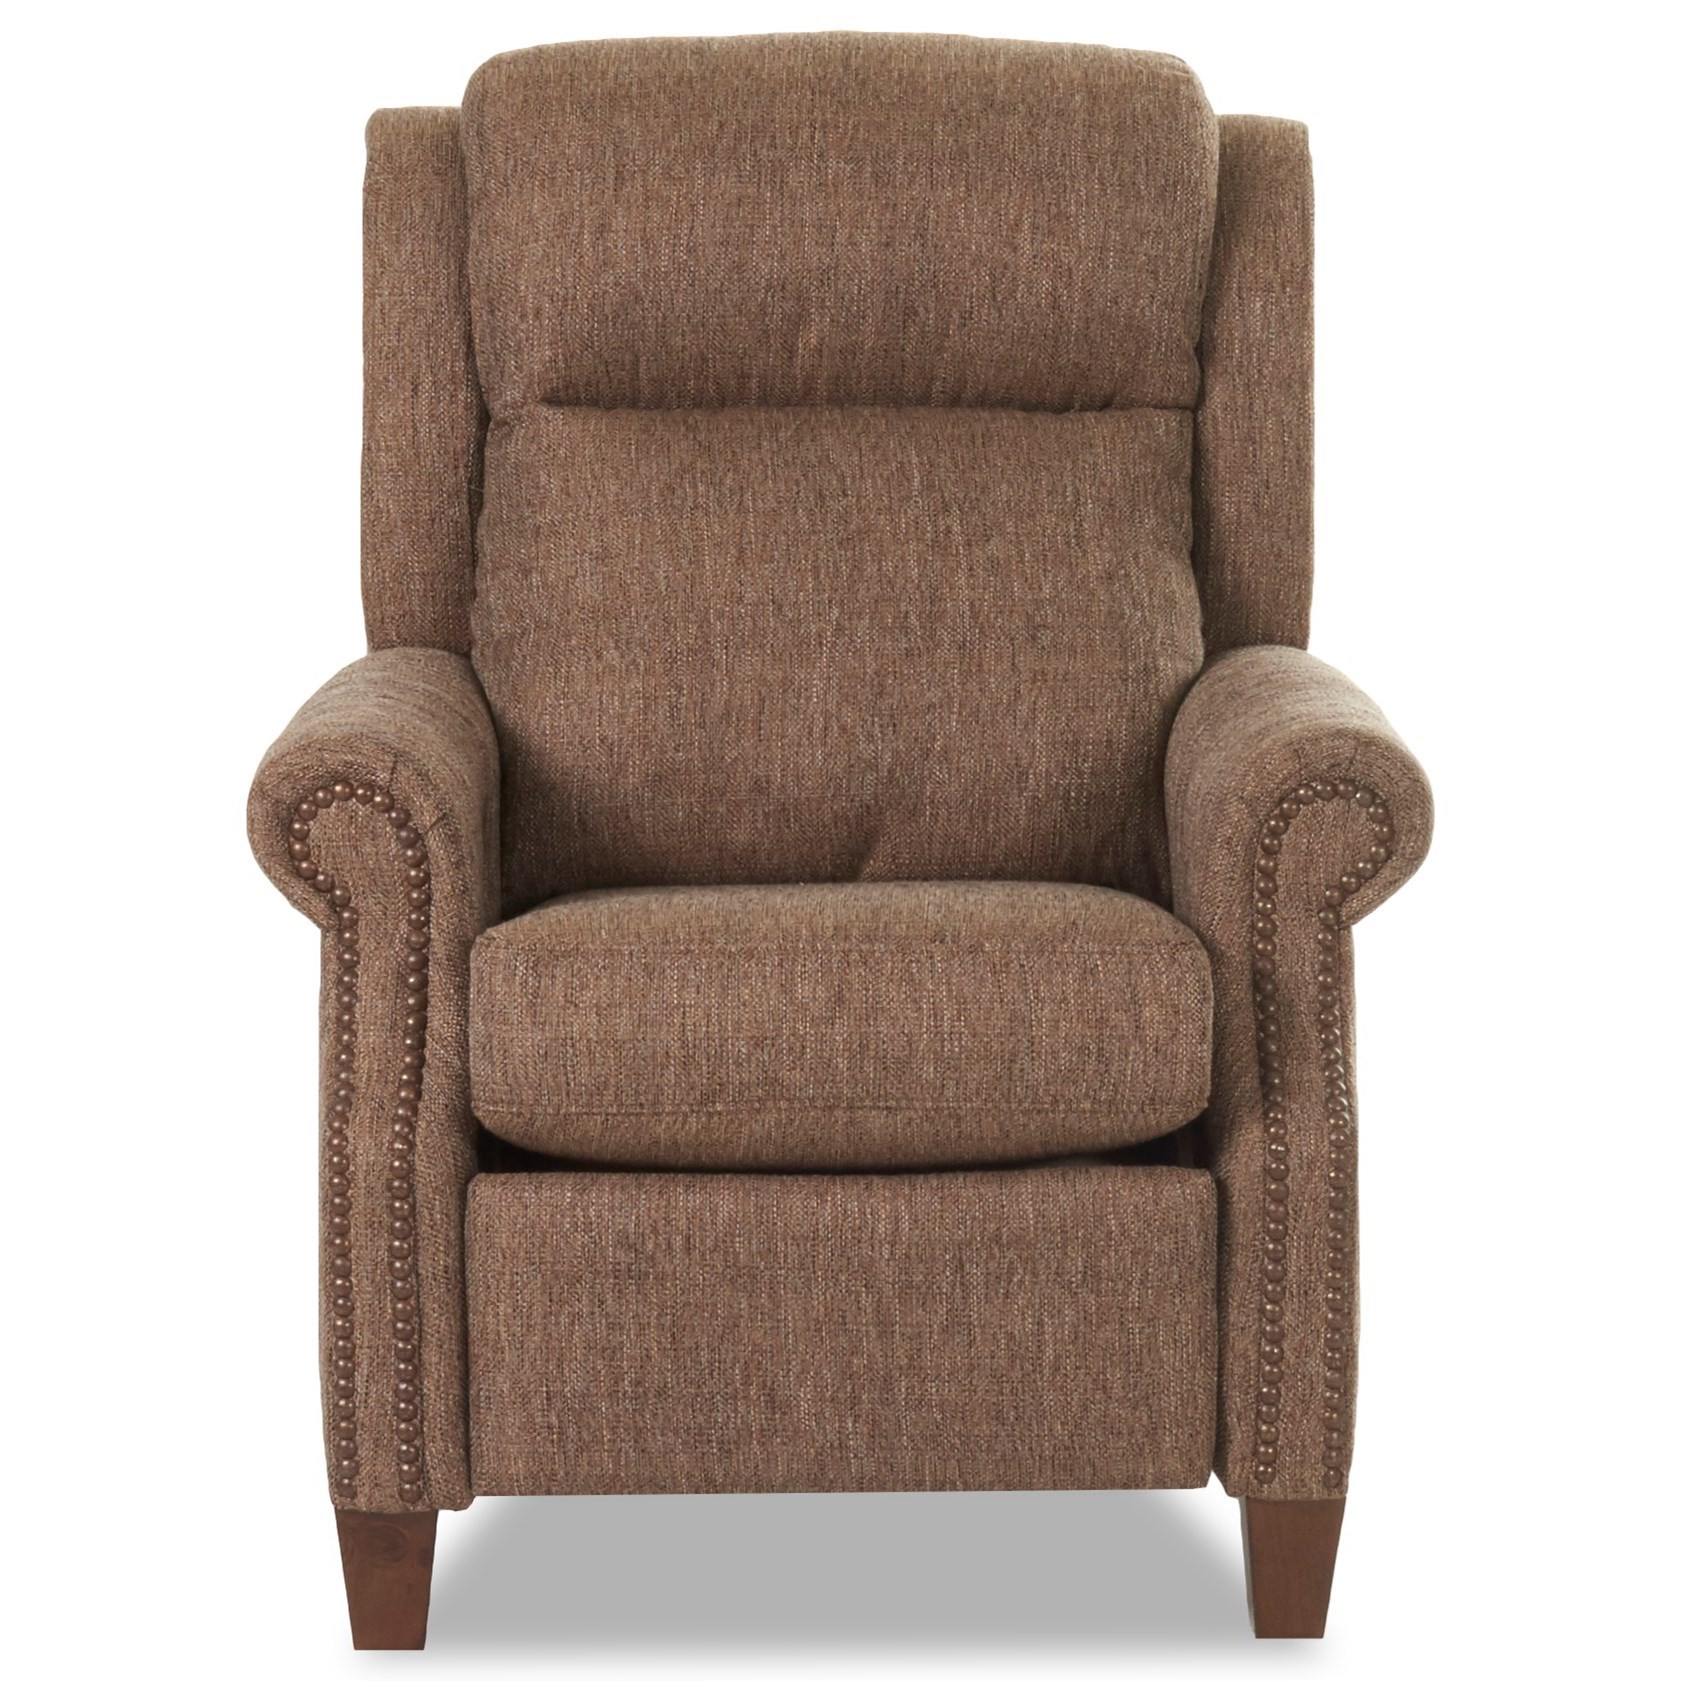 High Leg Recliner w/ Nailheads